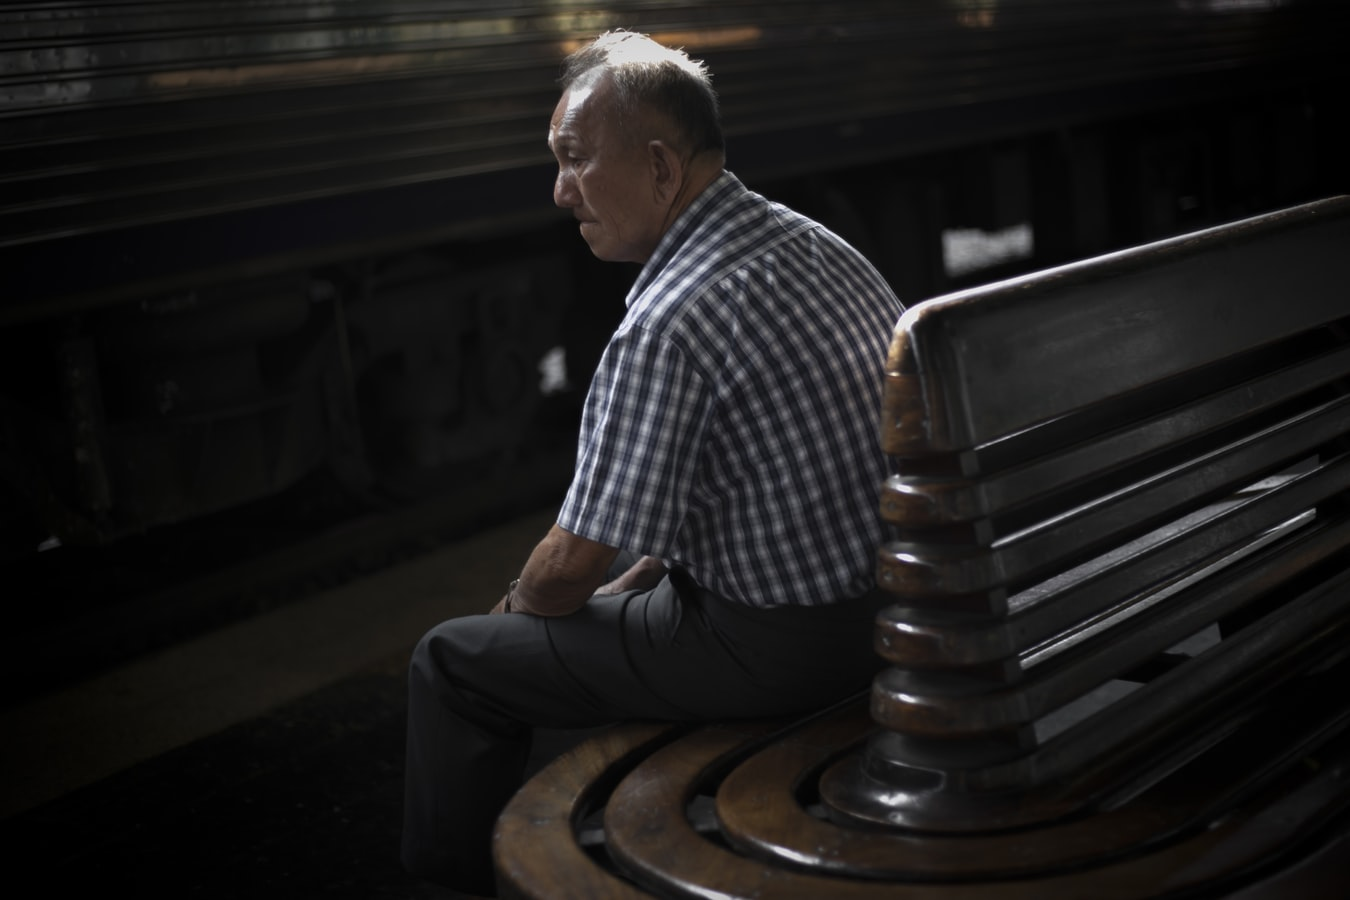 An older man sitting on a bench. PTSD in seniors is becoming more common